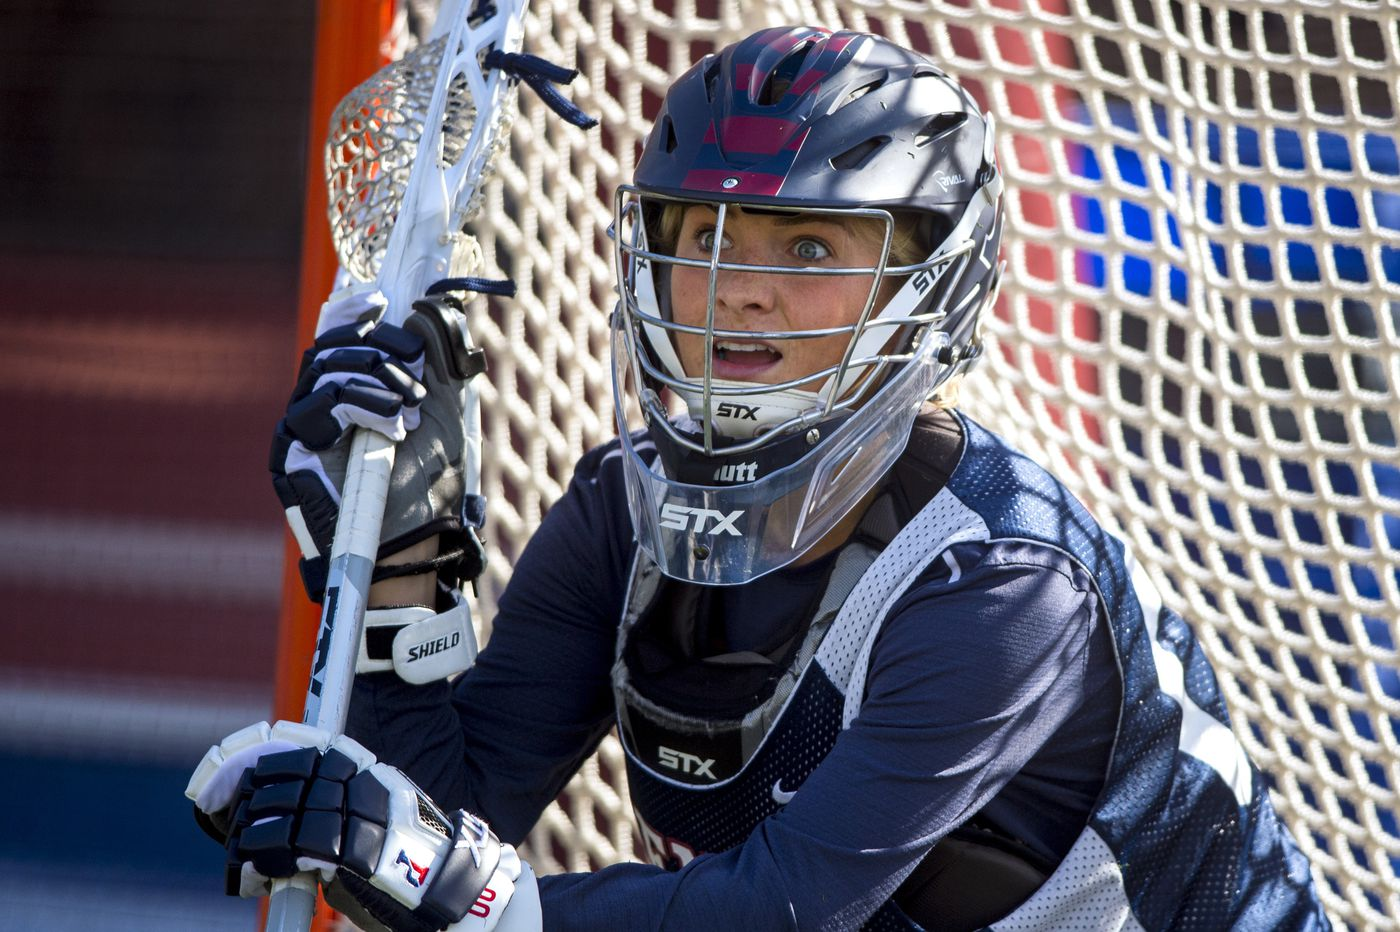 Penn women's lacrosse back in national spotlight thanks to goalie Mikaila Cheeseman and explosive offense